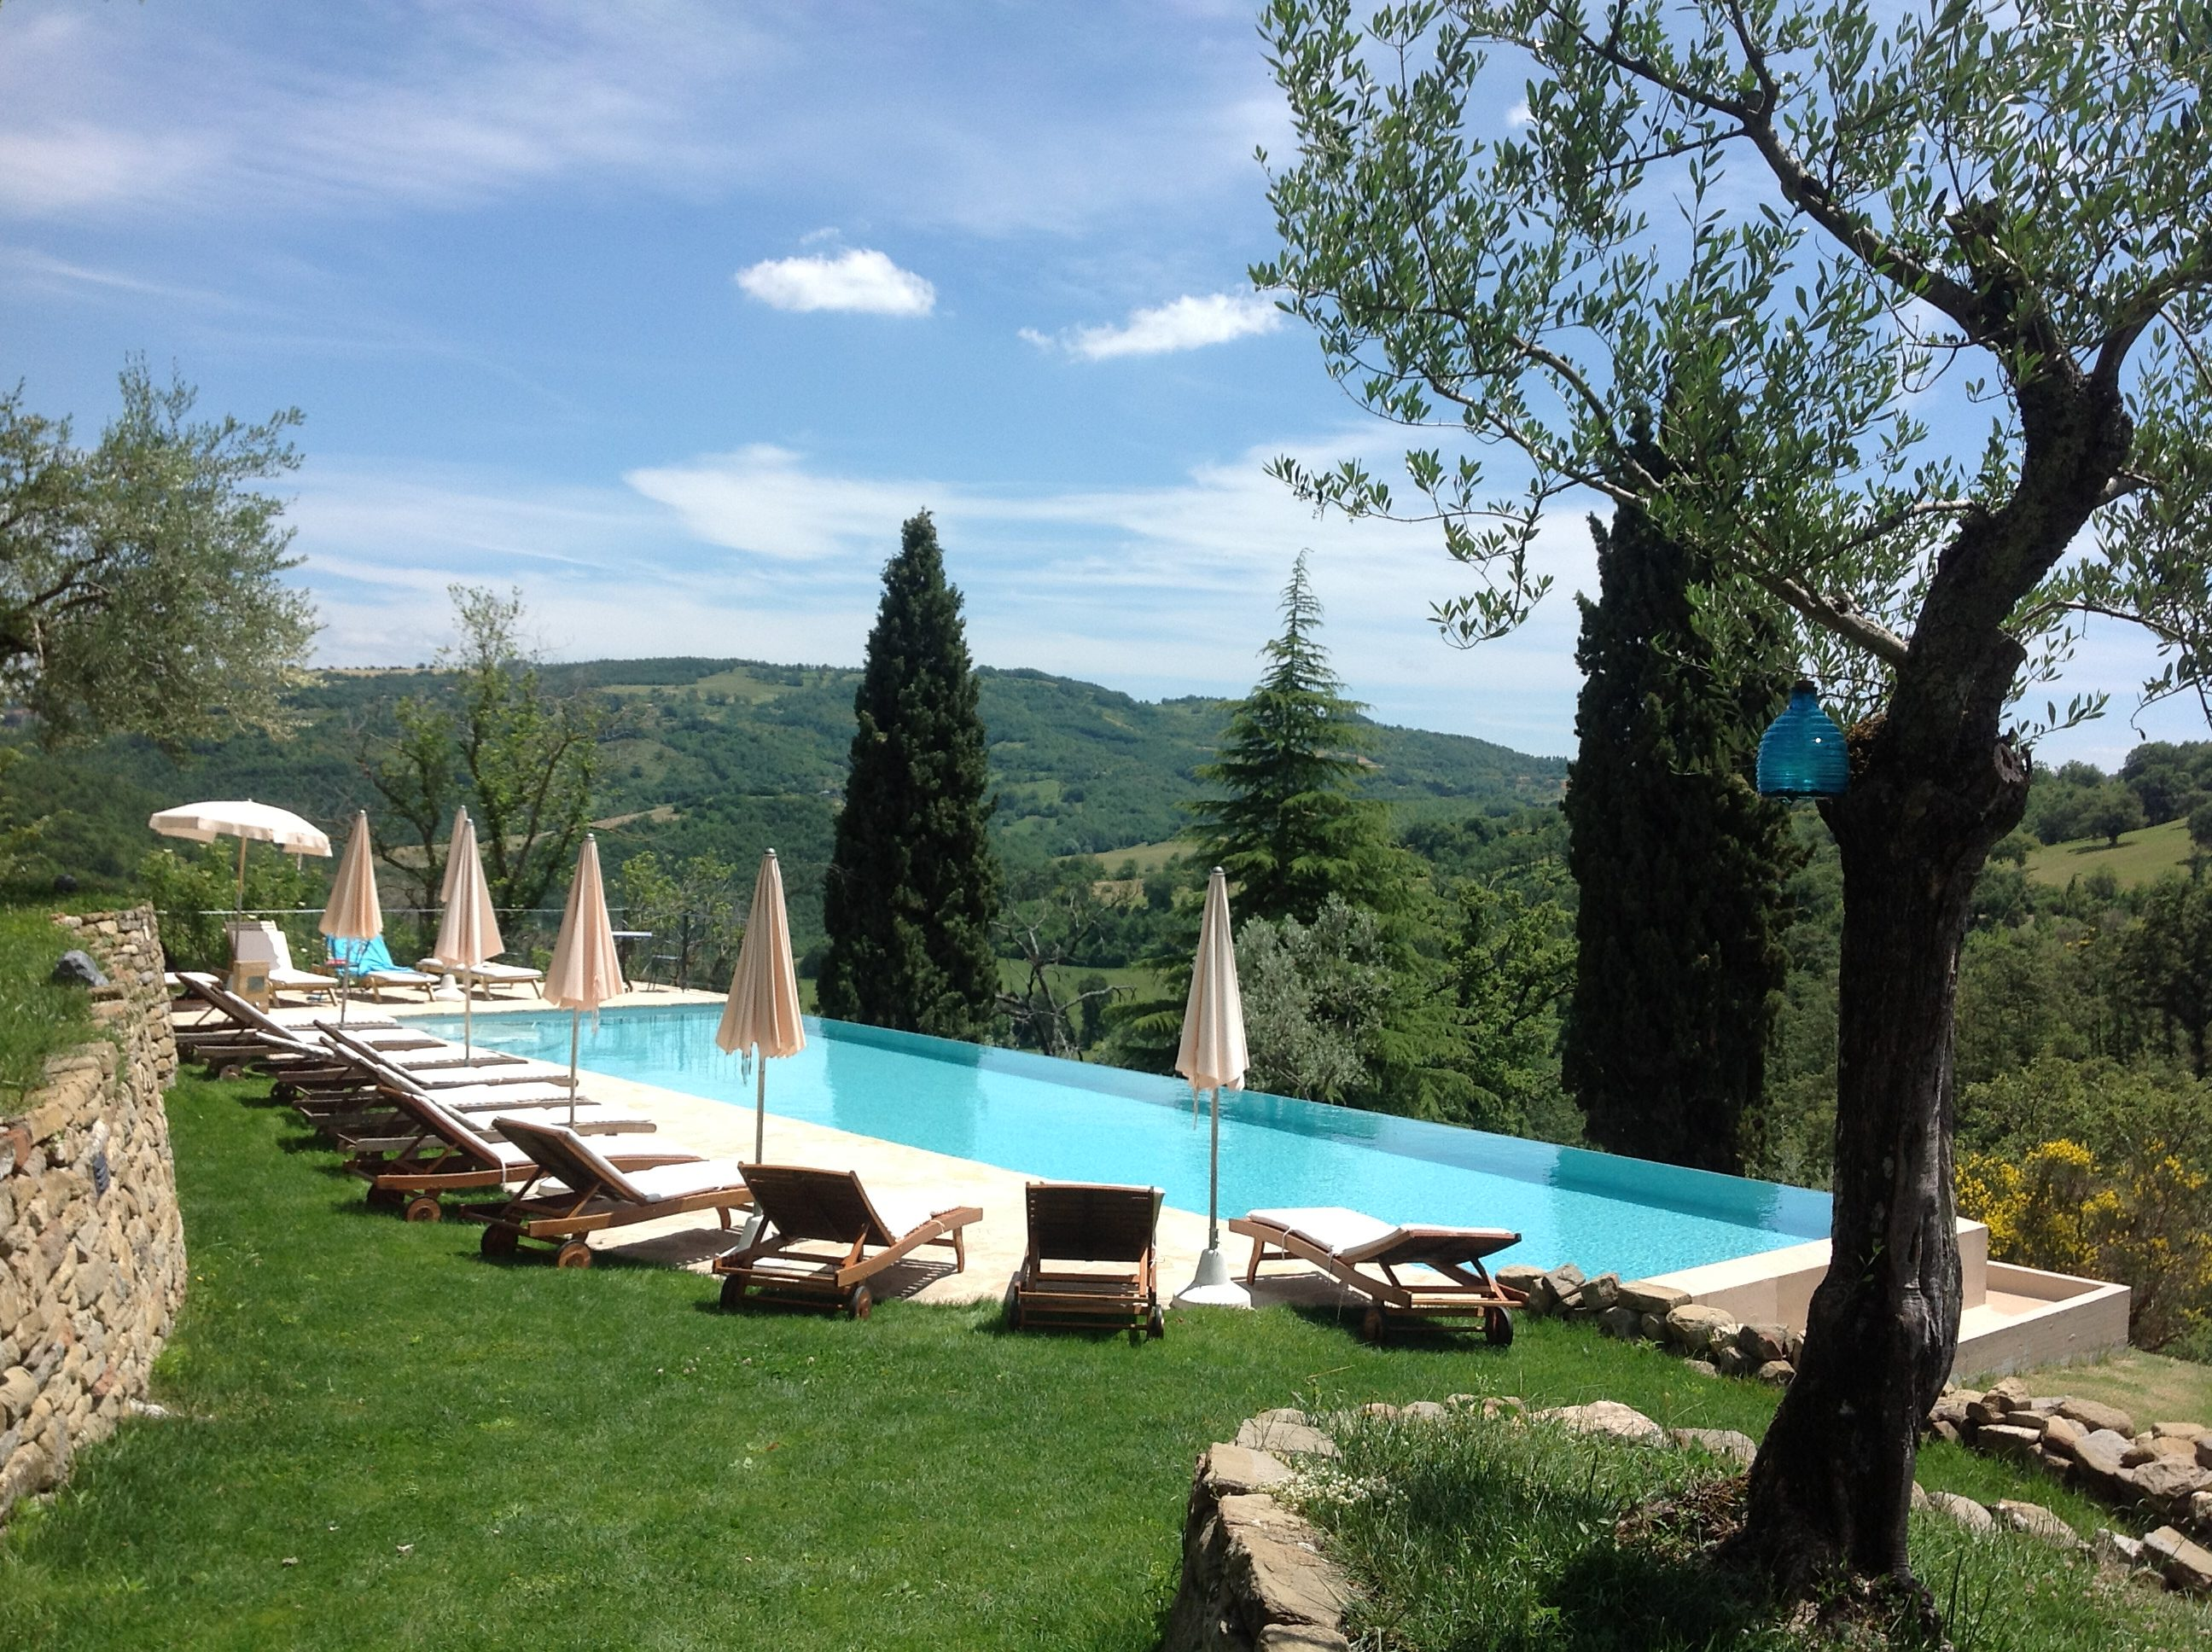 Borgo di Carpiano Pool